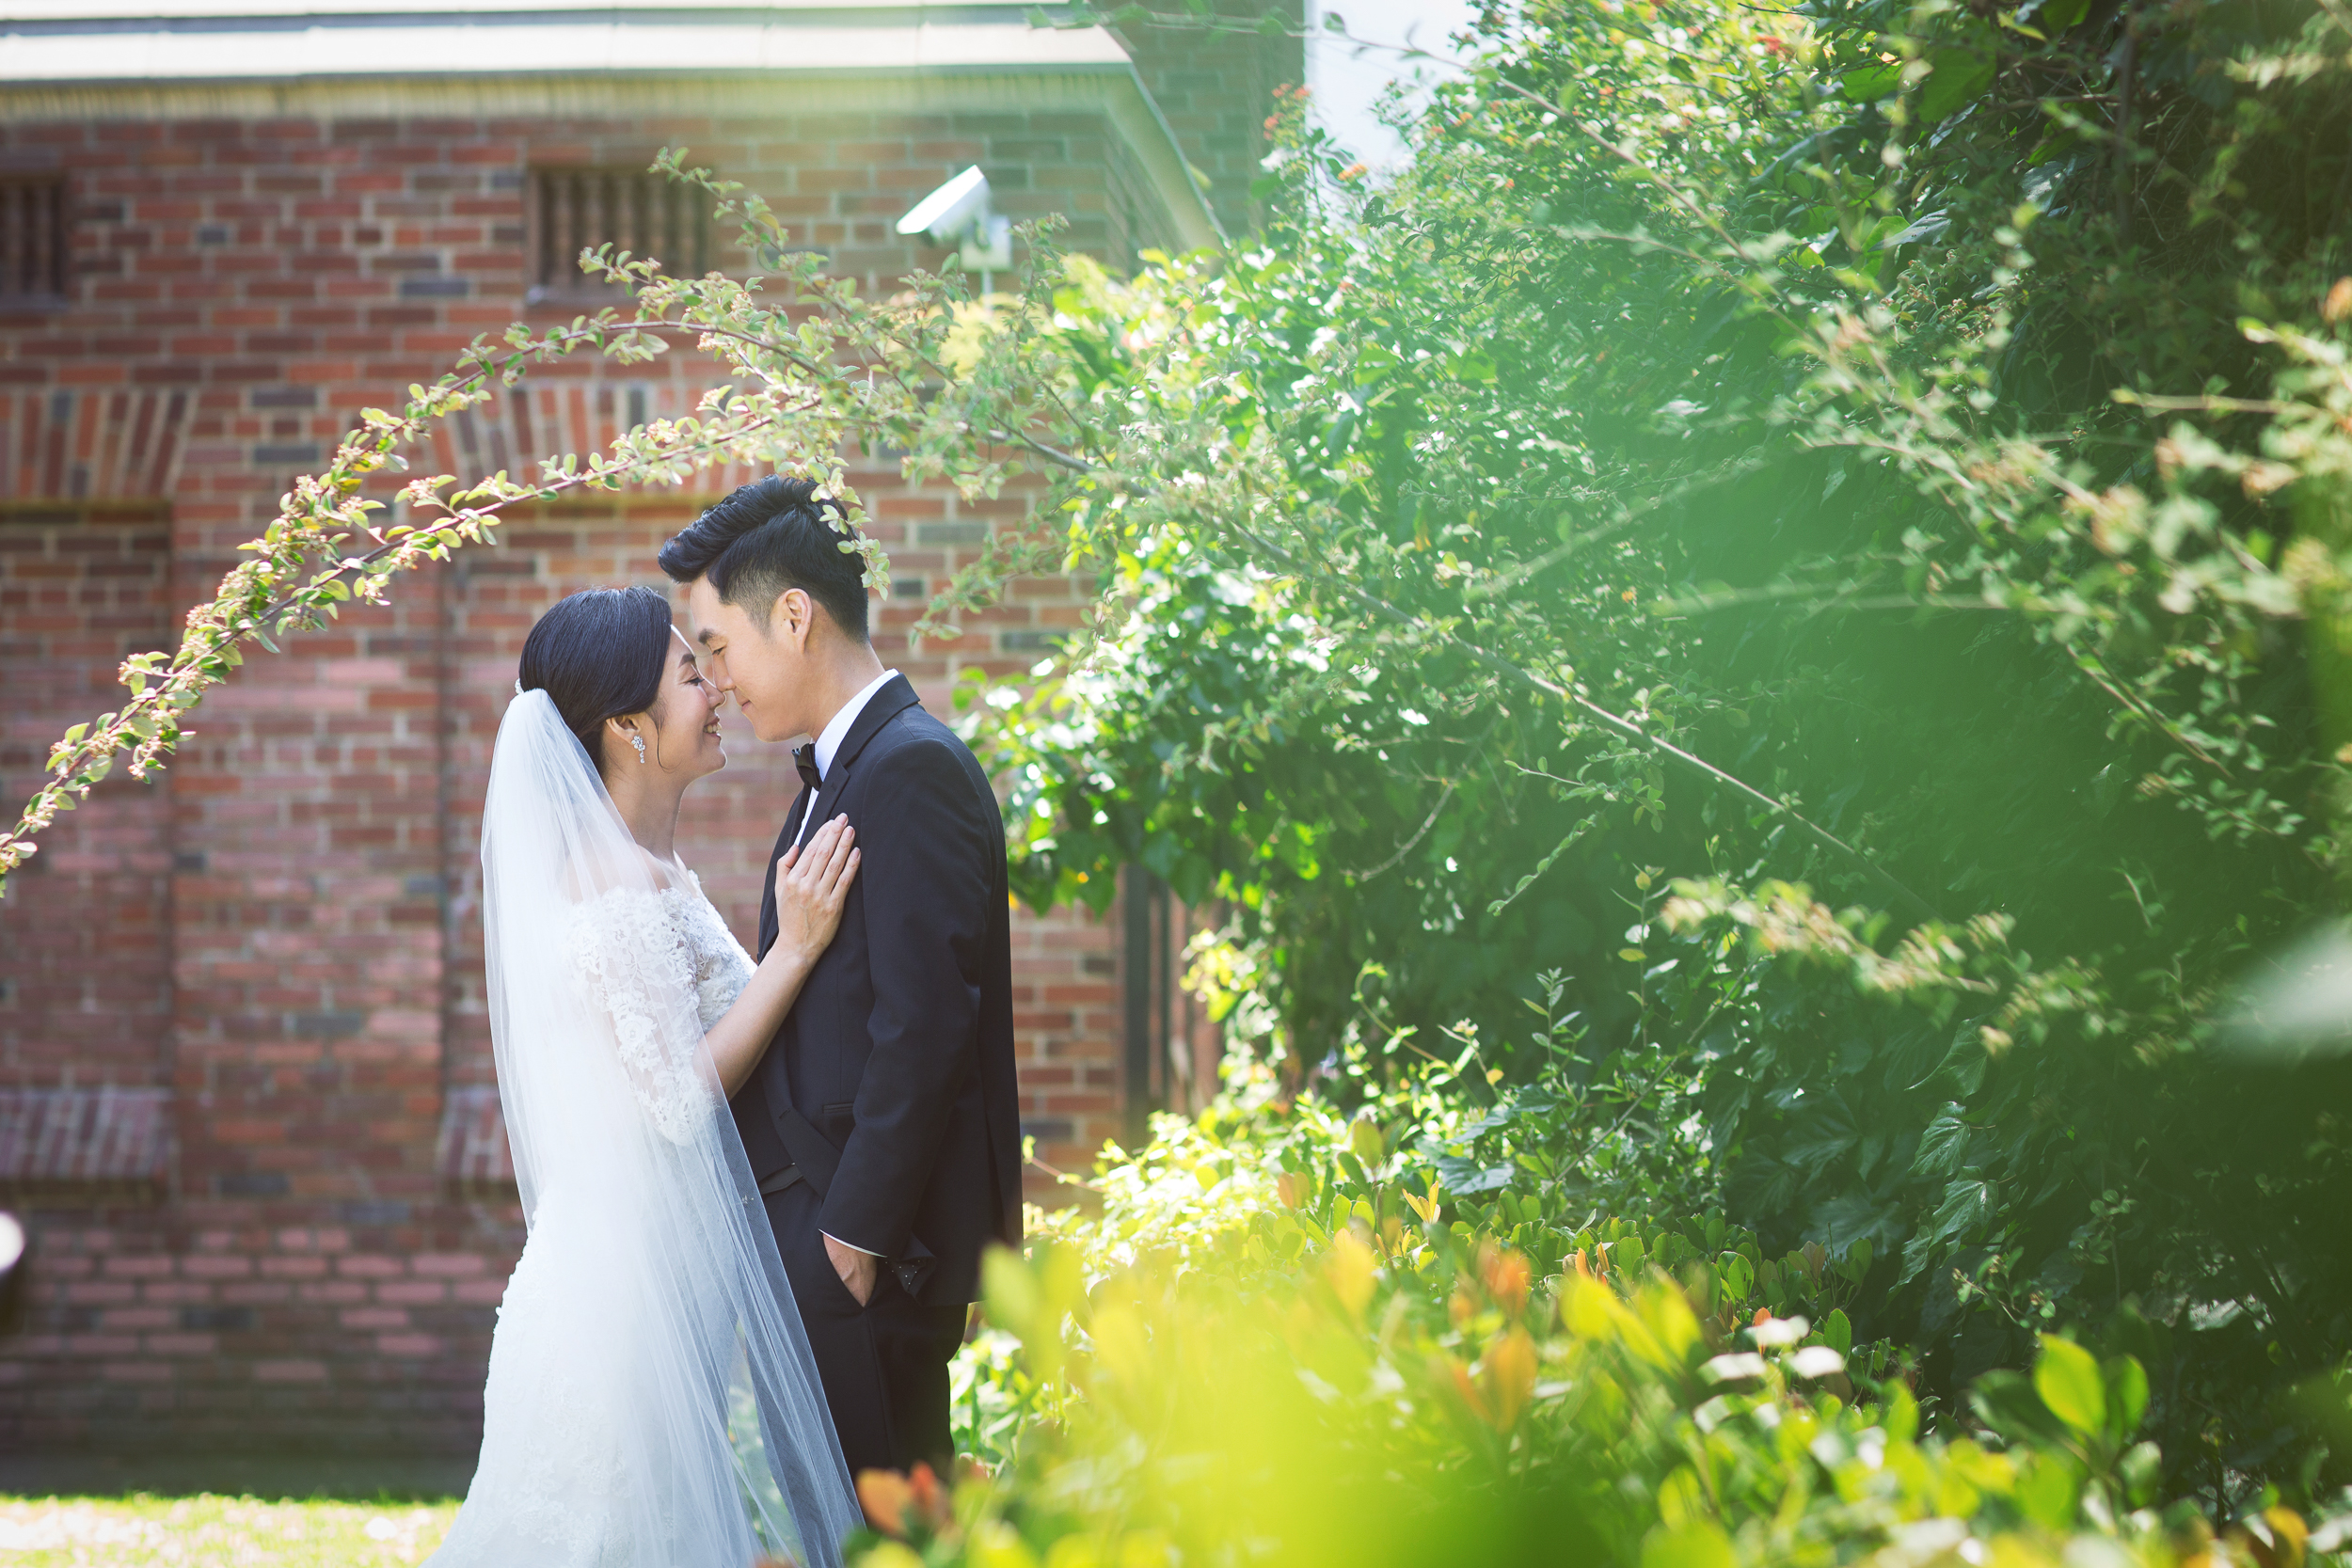 15_Ji Young Choi & Kyungmin Song Wedding